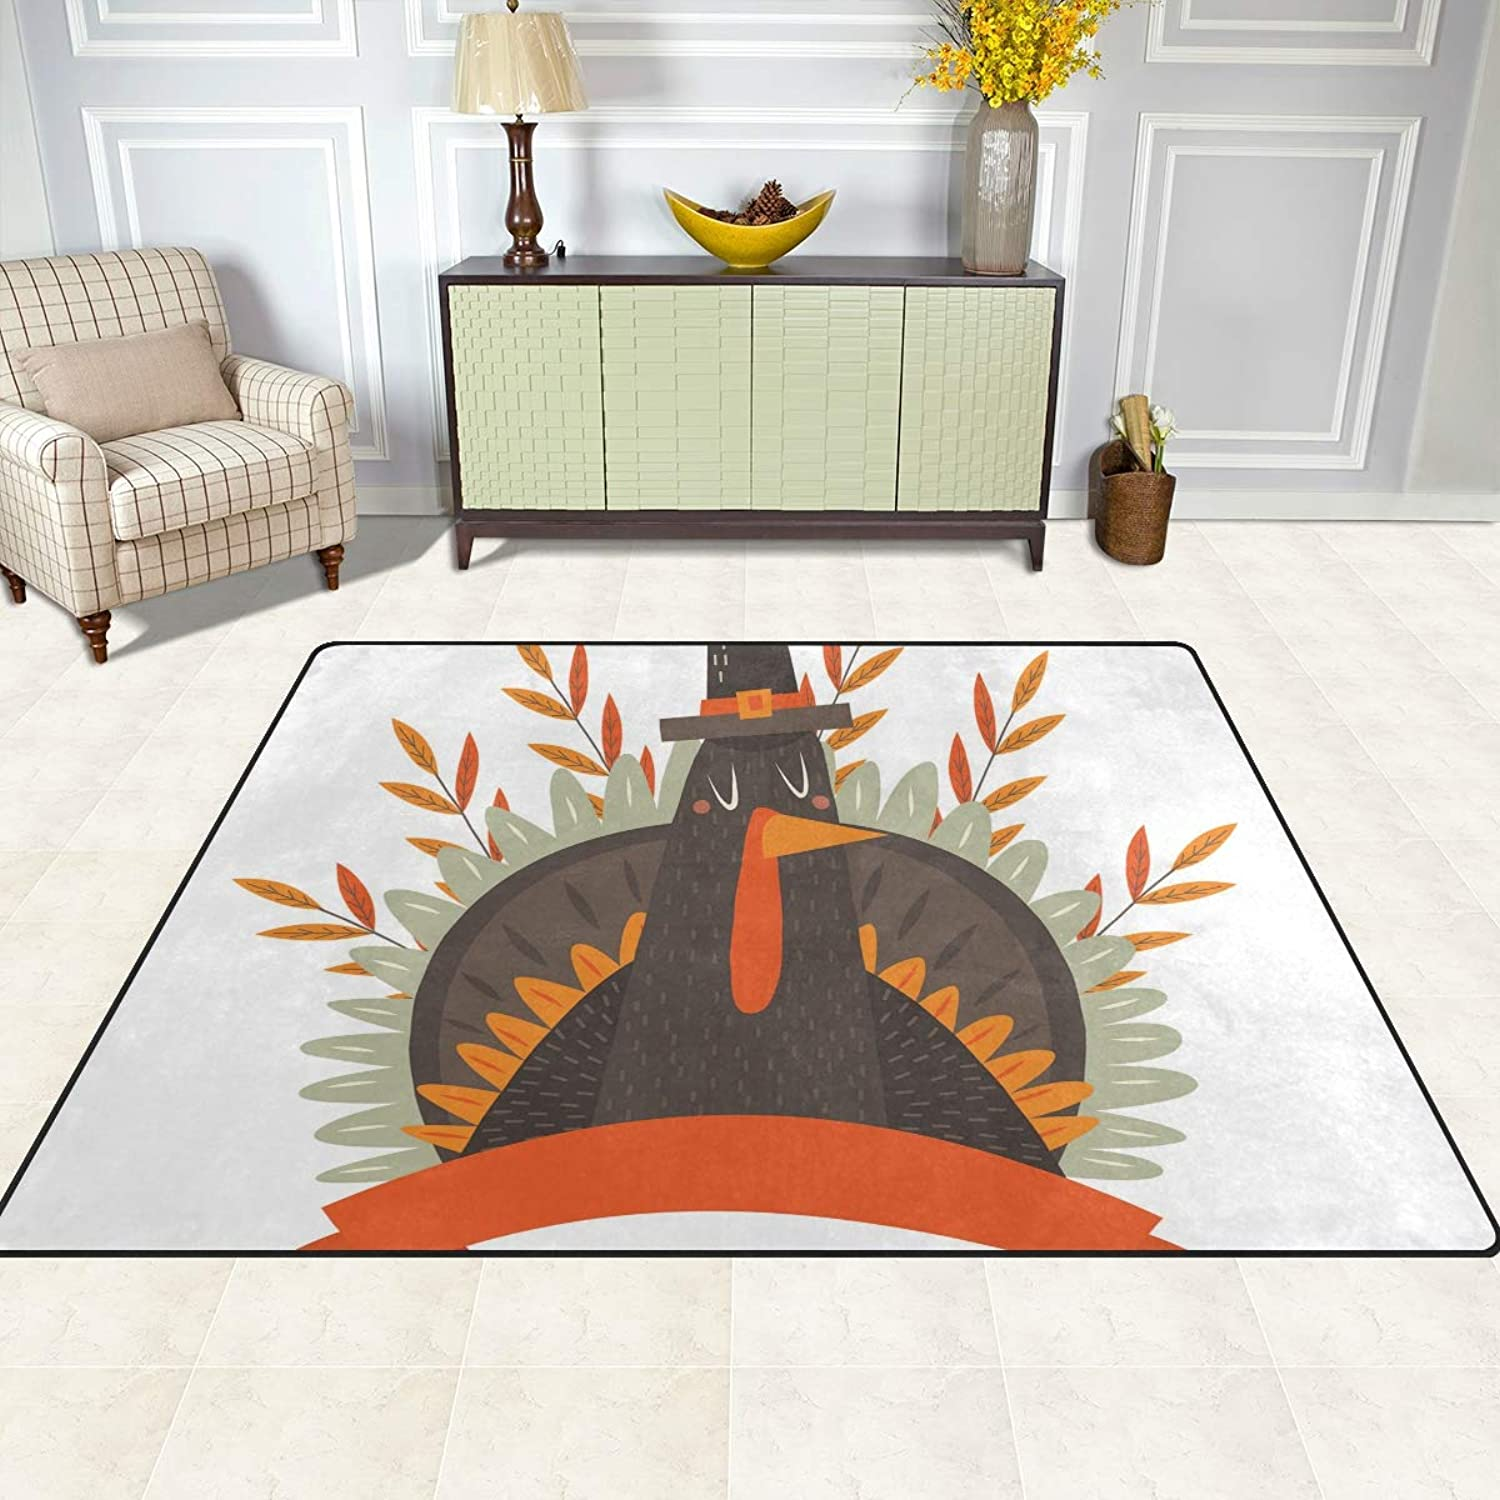 FAJRO Thanksgiving Day Turkey Rugs for entryway Doormat Area Rug Multipattern Door Mat shoes Scraper Home Dec Anti-Slip Indoor Outdoor